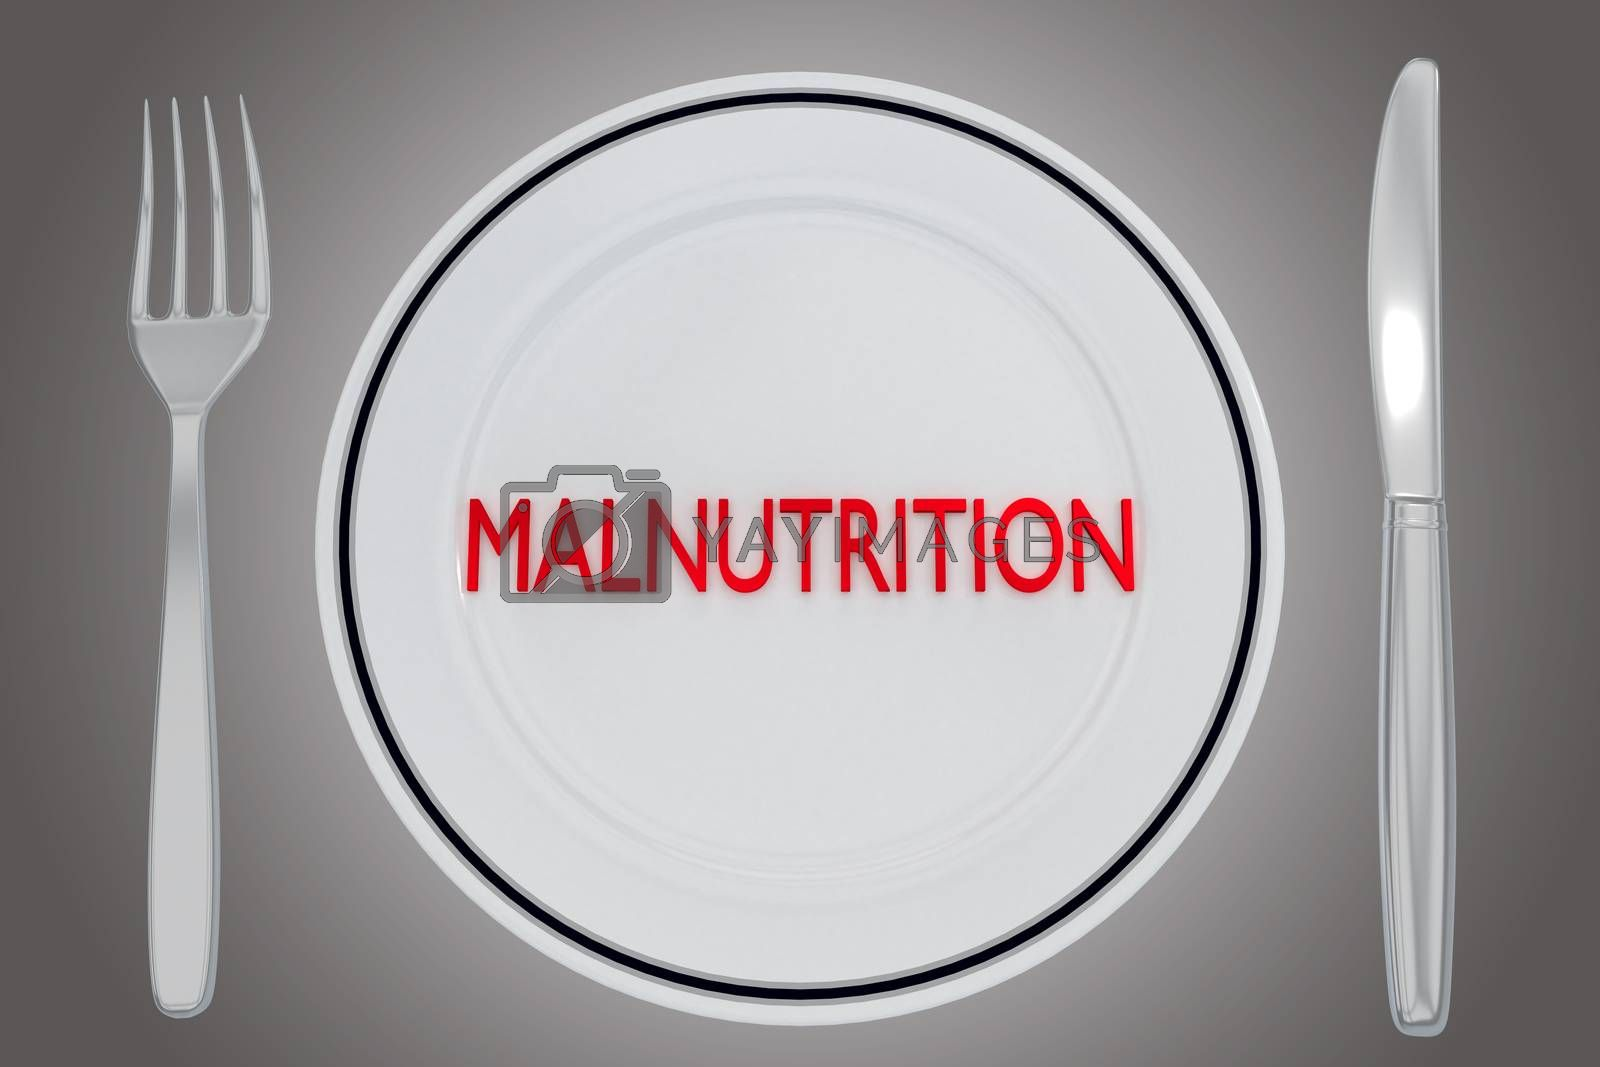 3D illustration of MALNUTRITION title on a white plate, along with silver knif and fork, over a gray gradient.